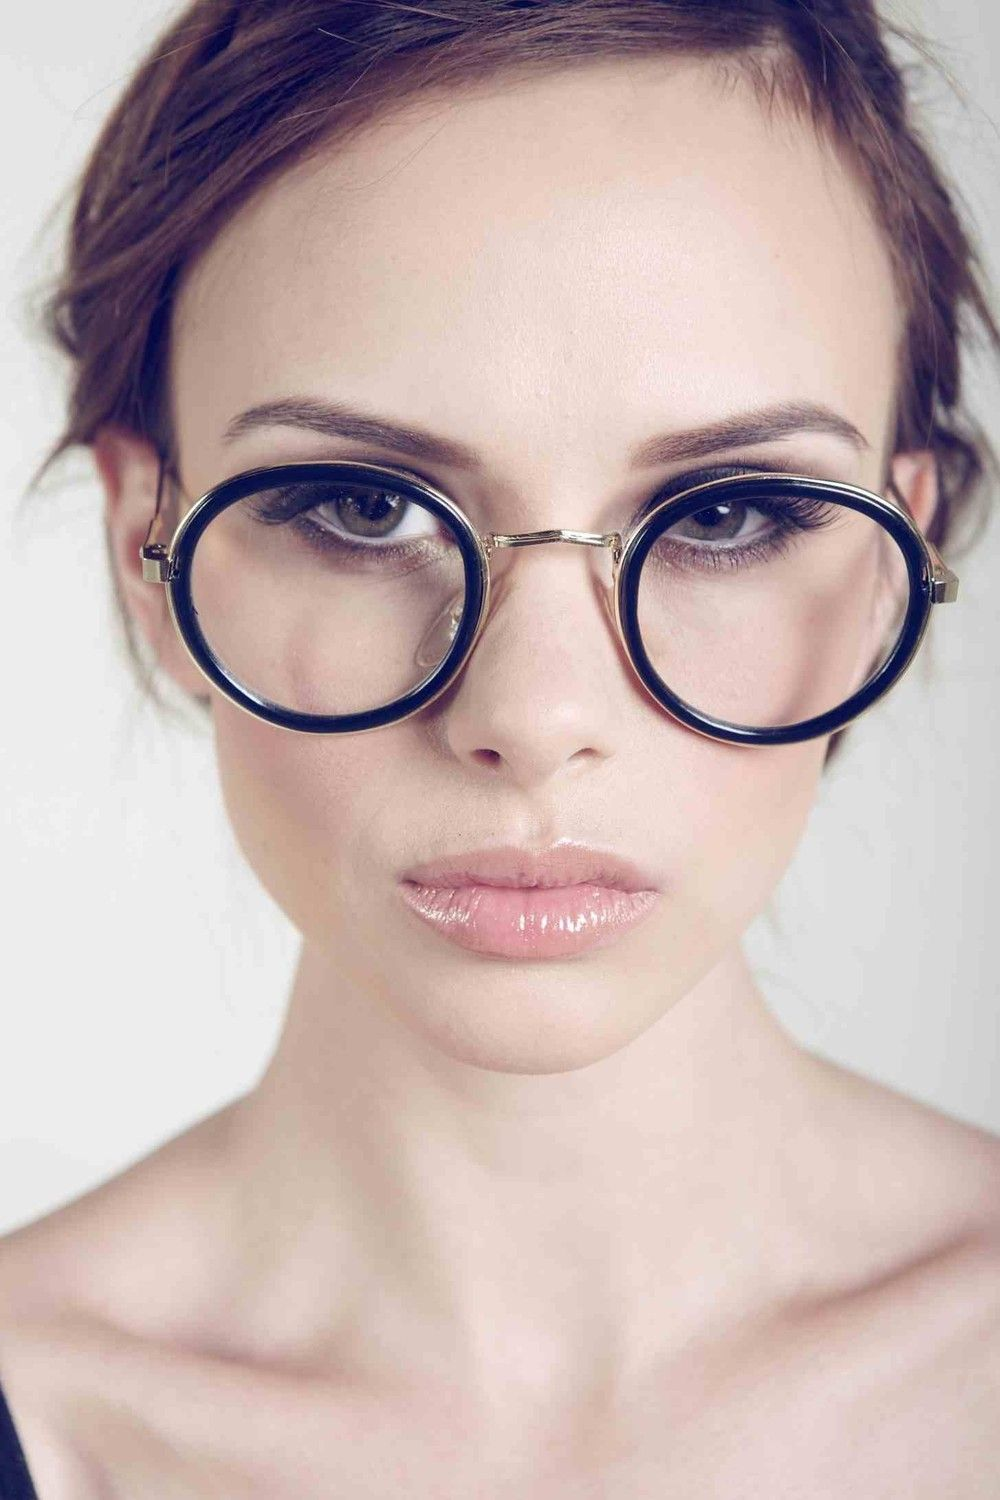 Deadstock Vintage Clear Fashion Glasses with Black Rims. $25.00, via Etsy.